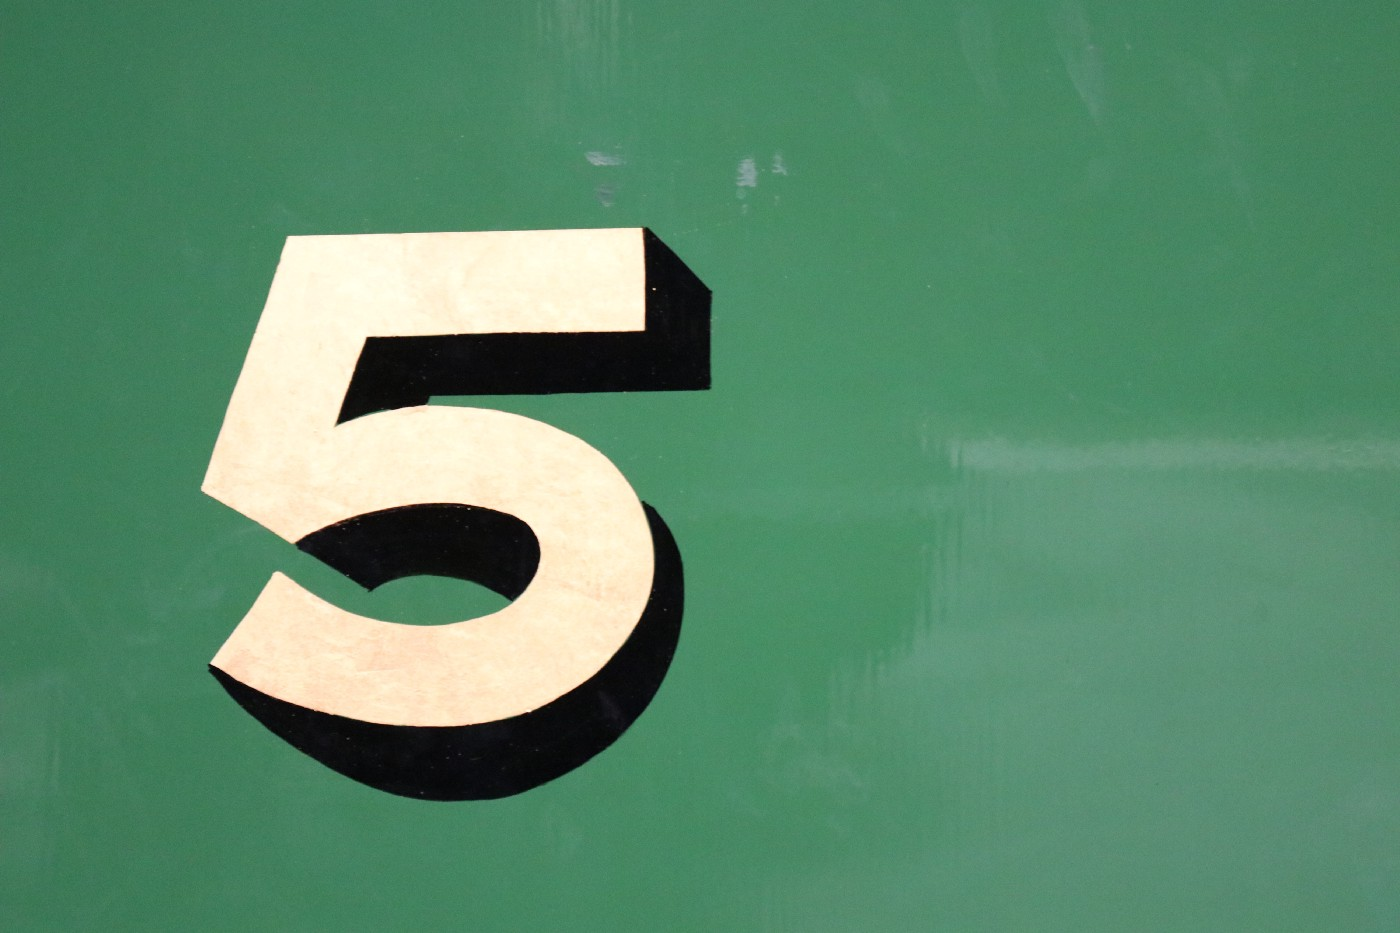 An image of the number 5